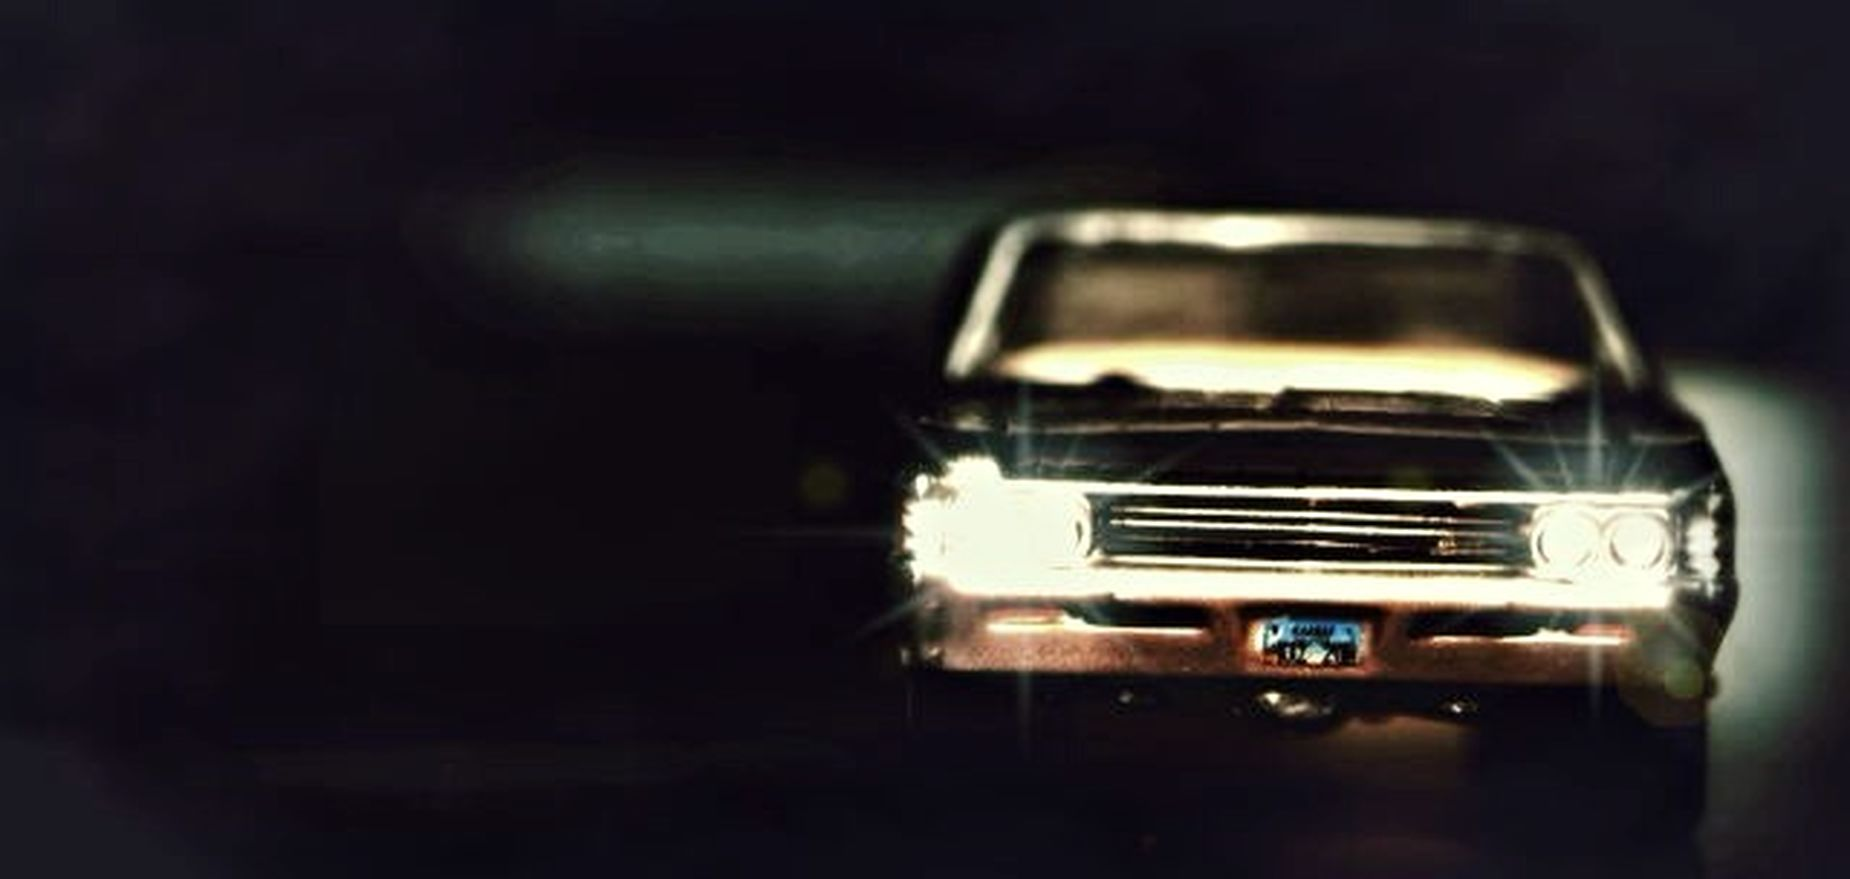 Impala Impala 67 1967 Impala Toy Impala Toy Lots Of Edits Edits Supernatural ❤ Spn SPN 😊 a picture of a toy impala and edited it to make it look like the real deal-ish